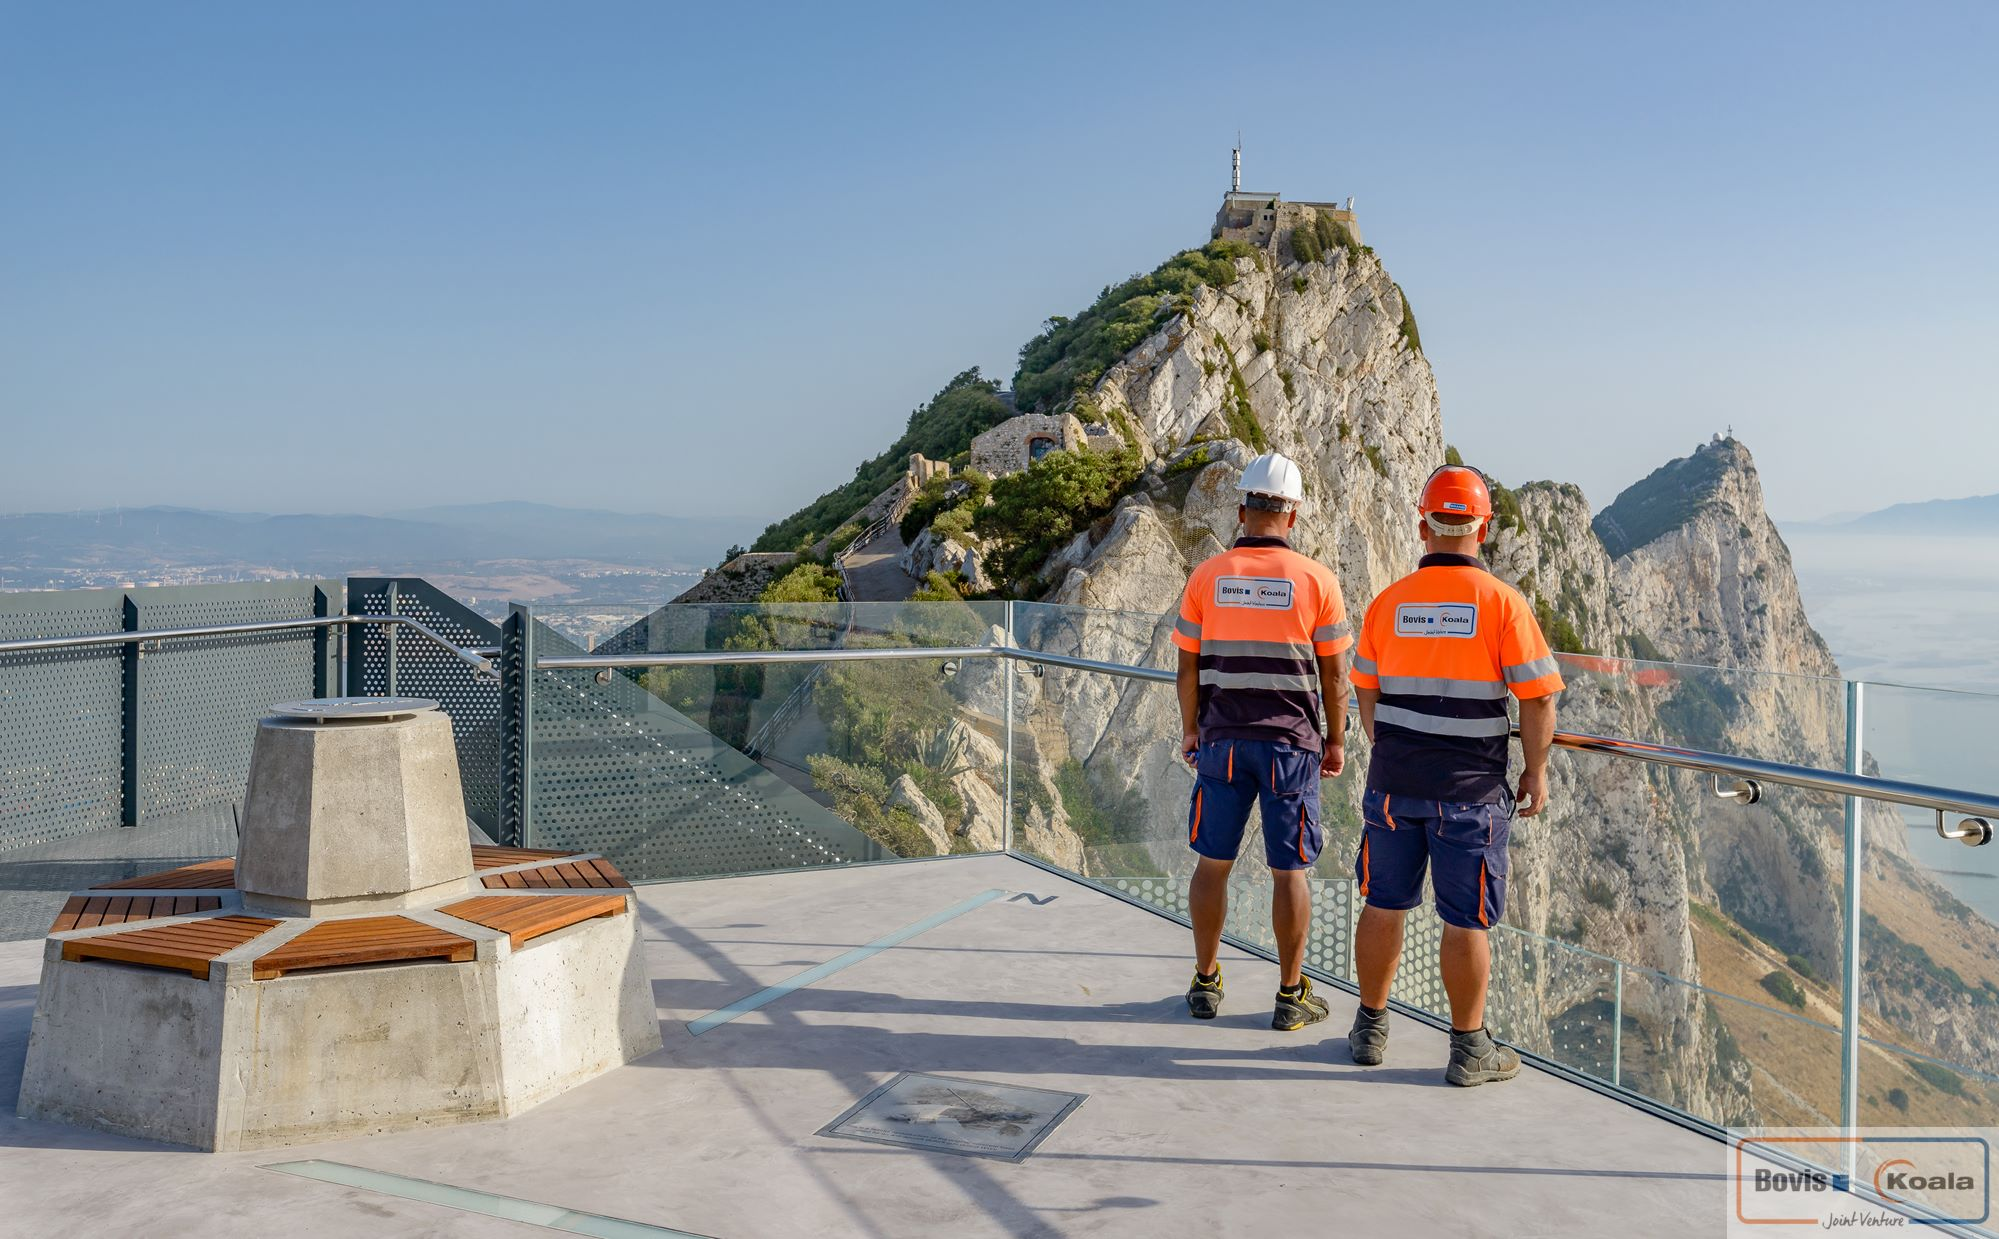 Bovis Koala Skywalk Gibraltar 20